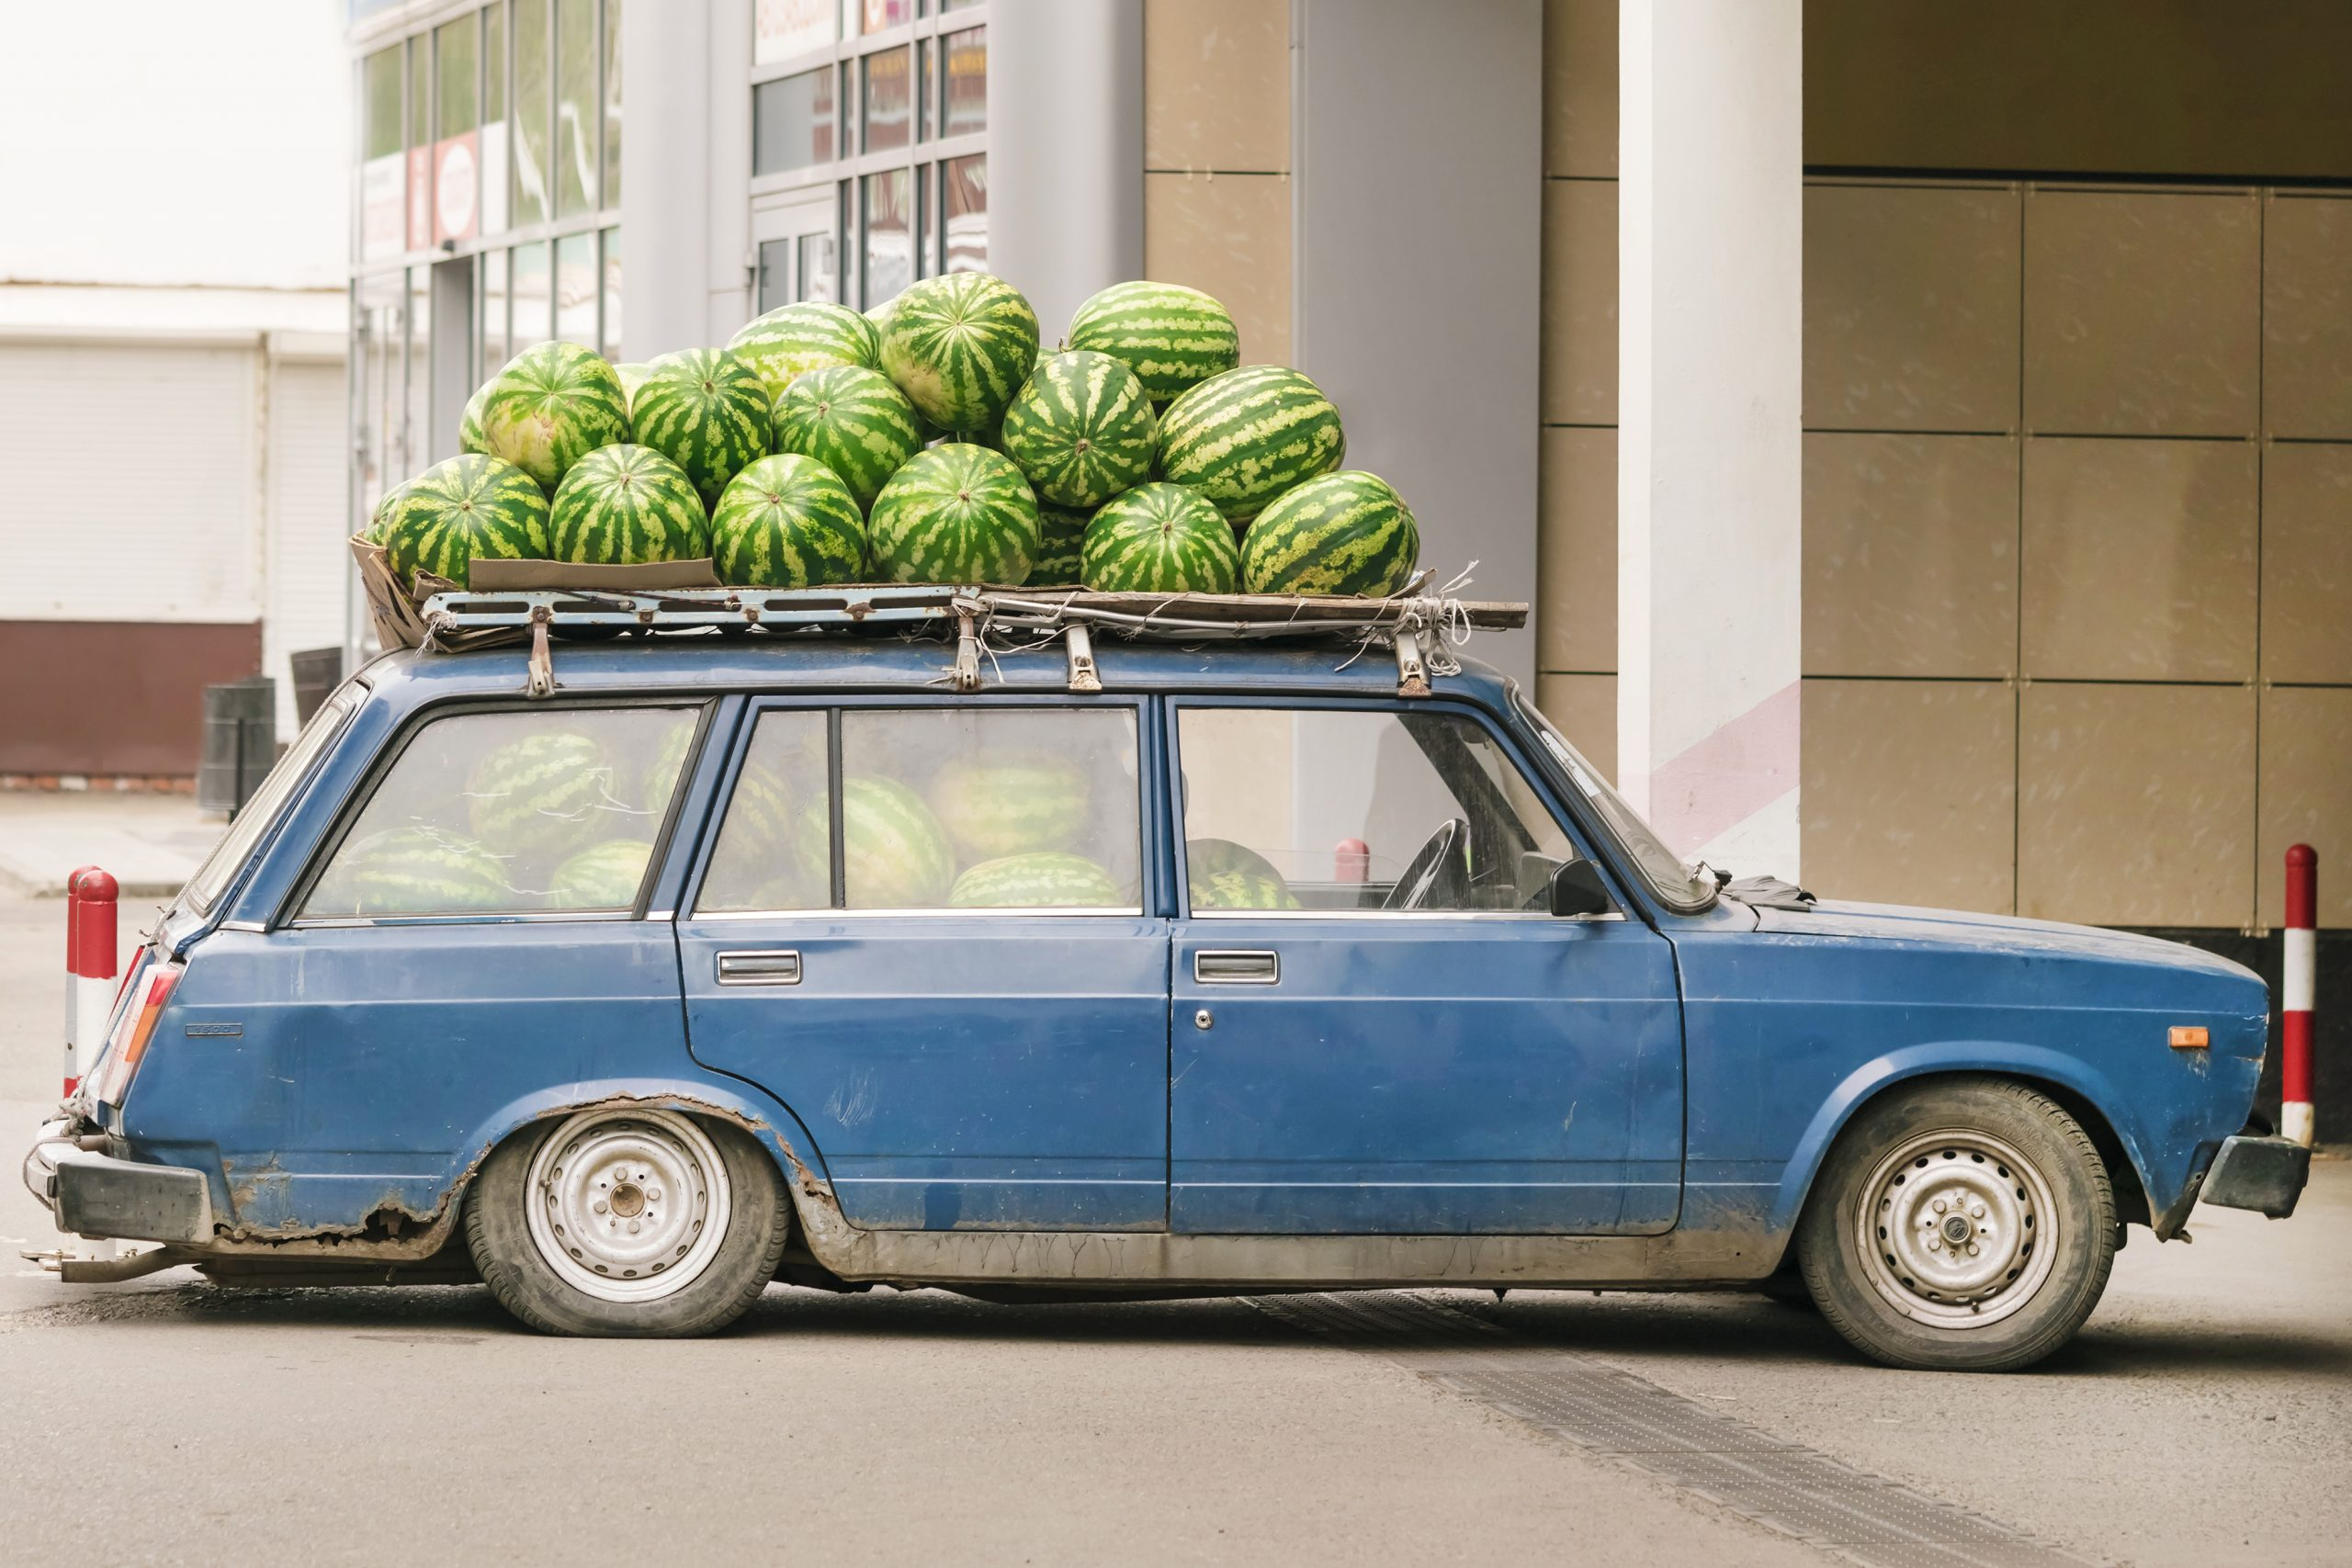 Car with watermelons for word problem